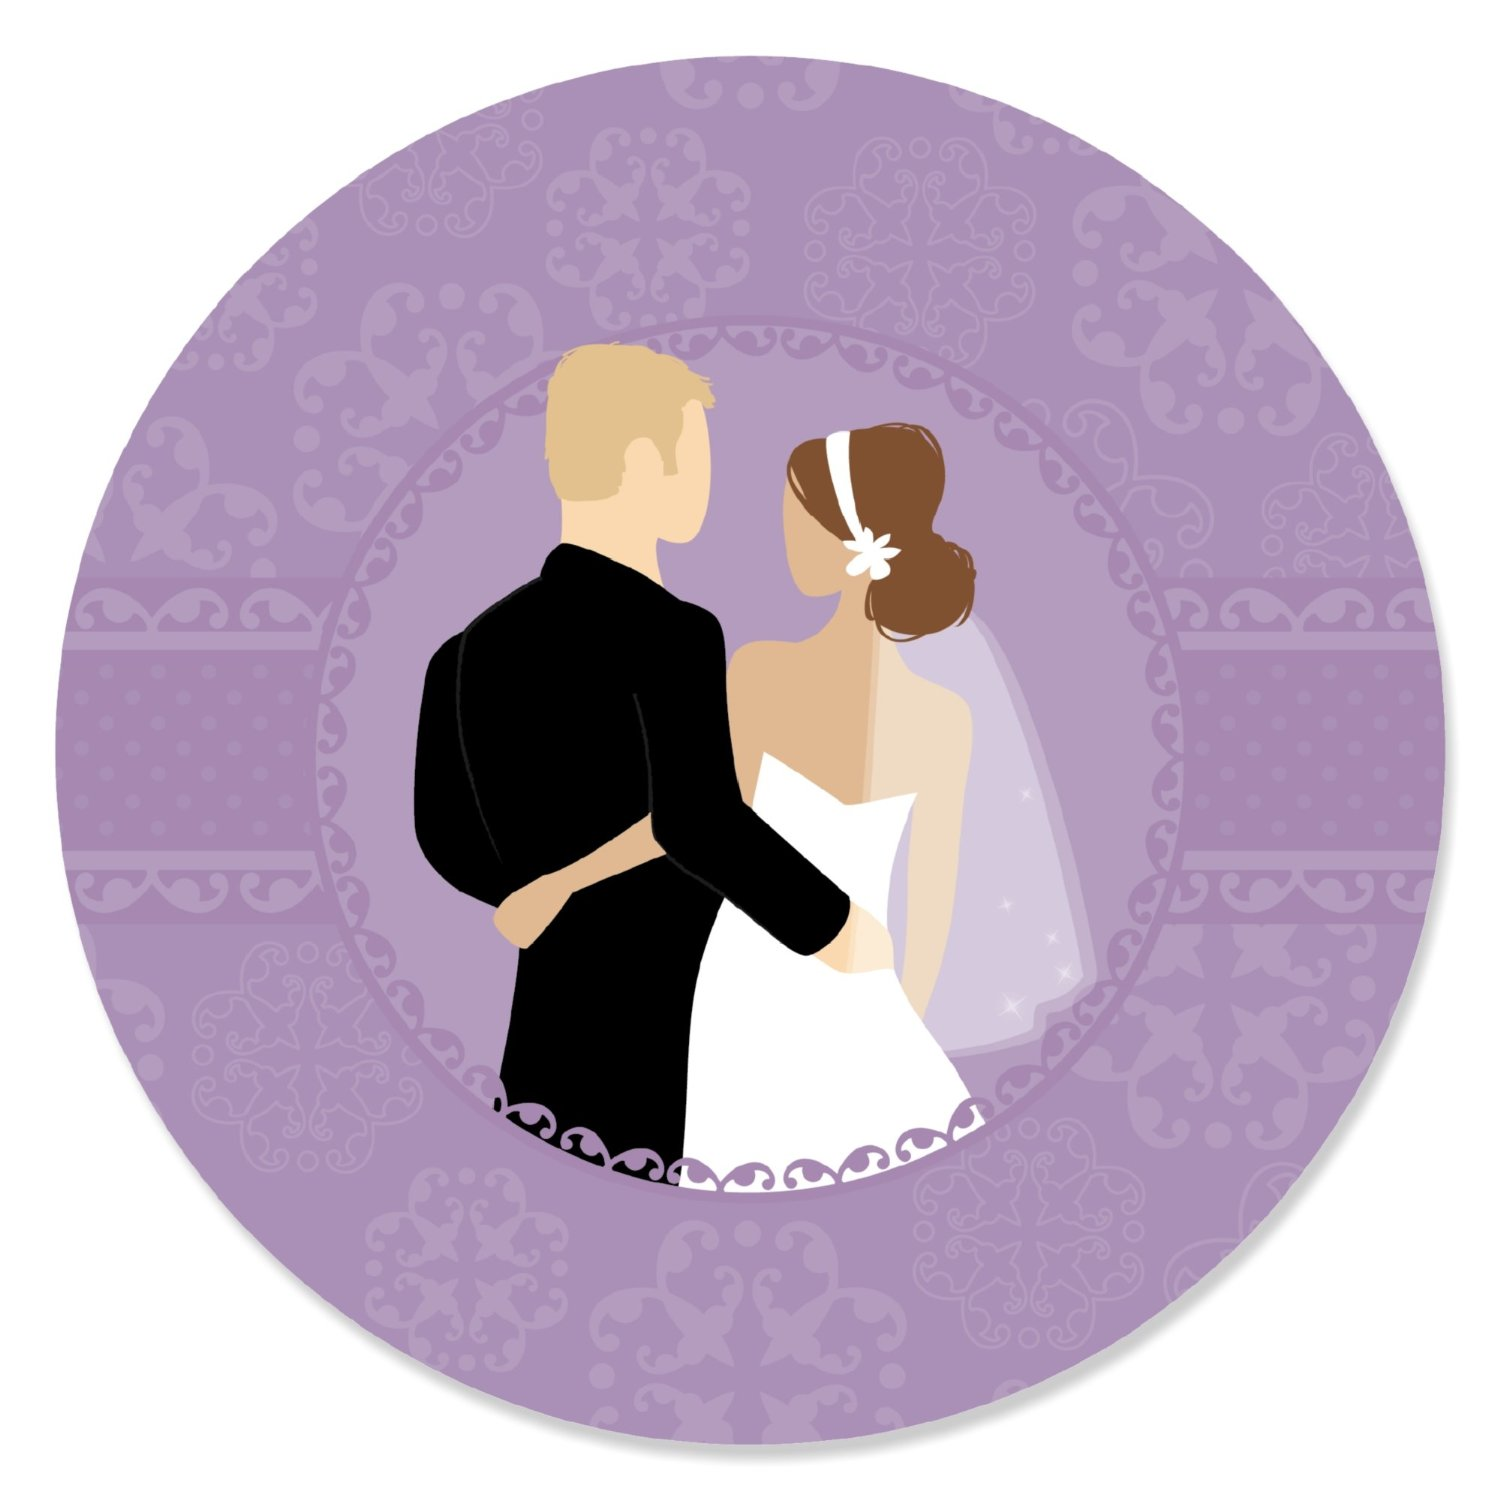 Wedding Couples Purple - Party Circle Sticker Labels - 24 Count